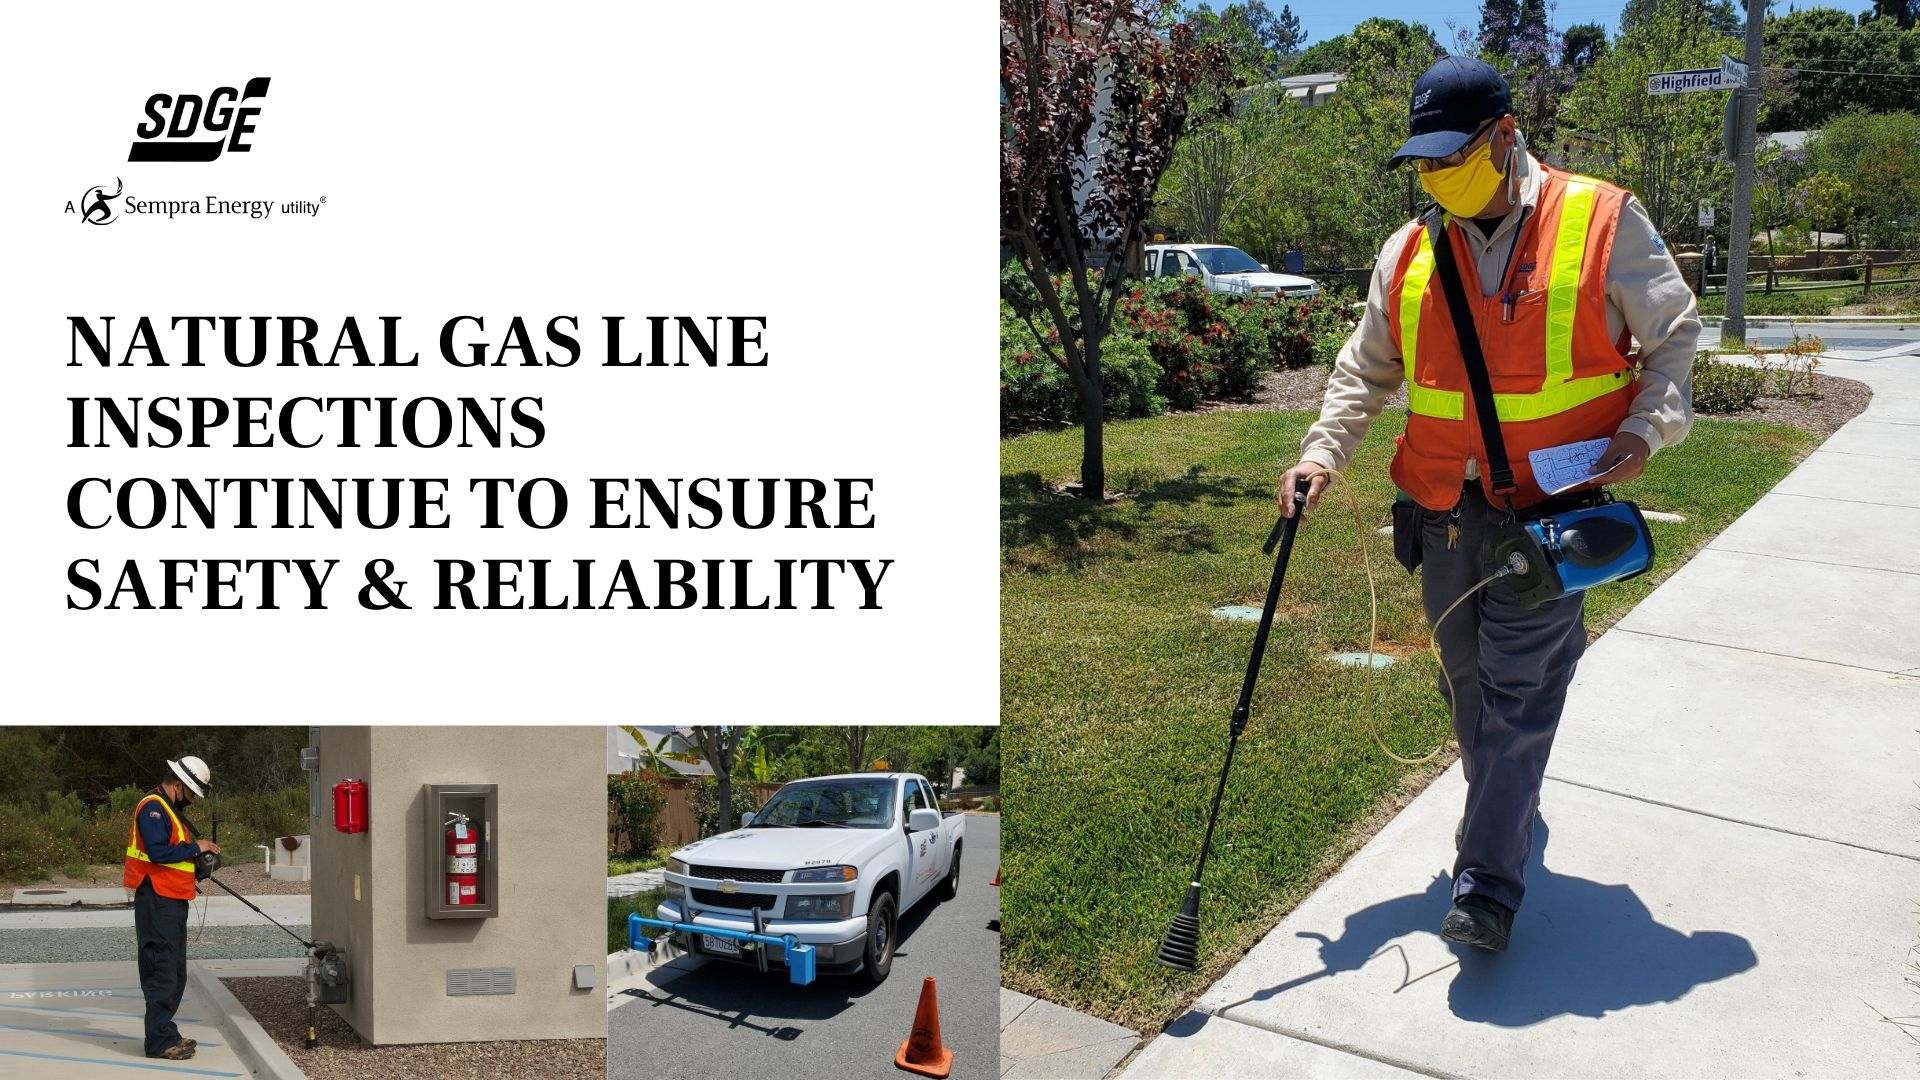 SDG&E Continues to Inspect Natural Gas Lines to Ensure Safety and Reliability